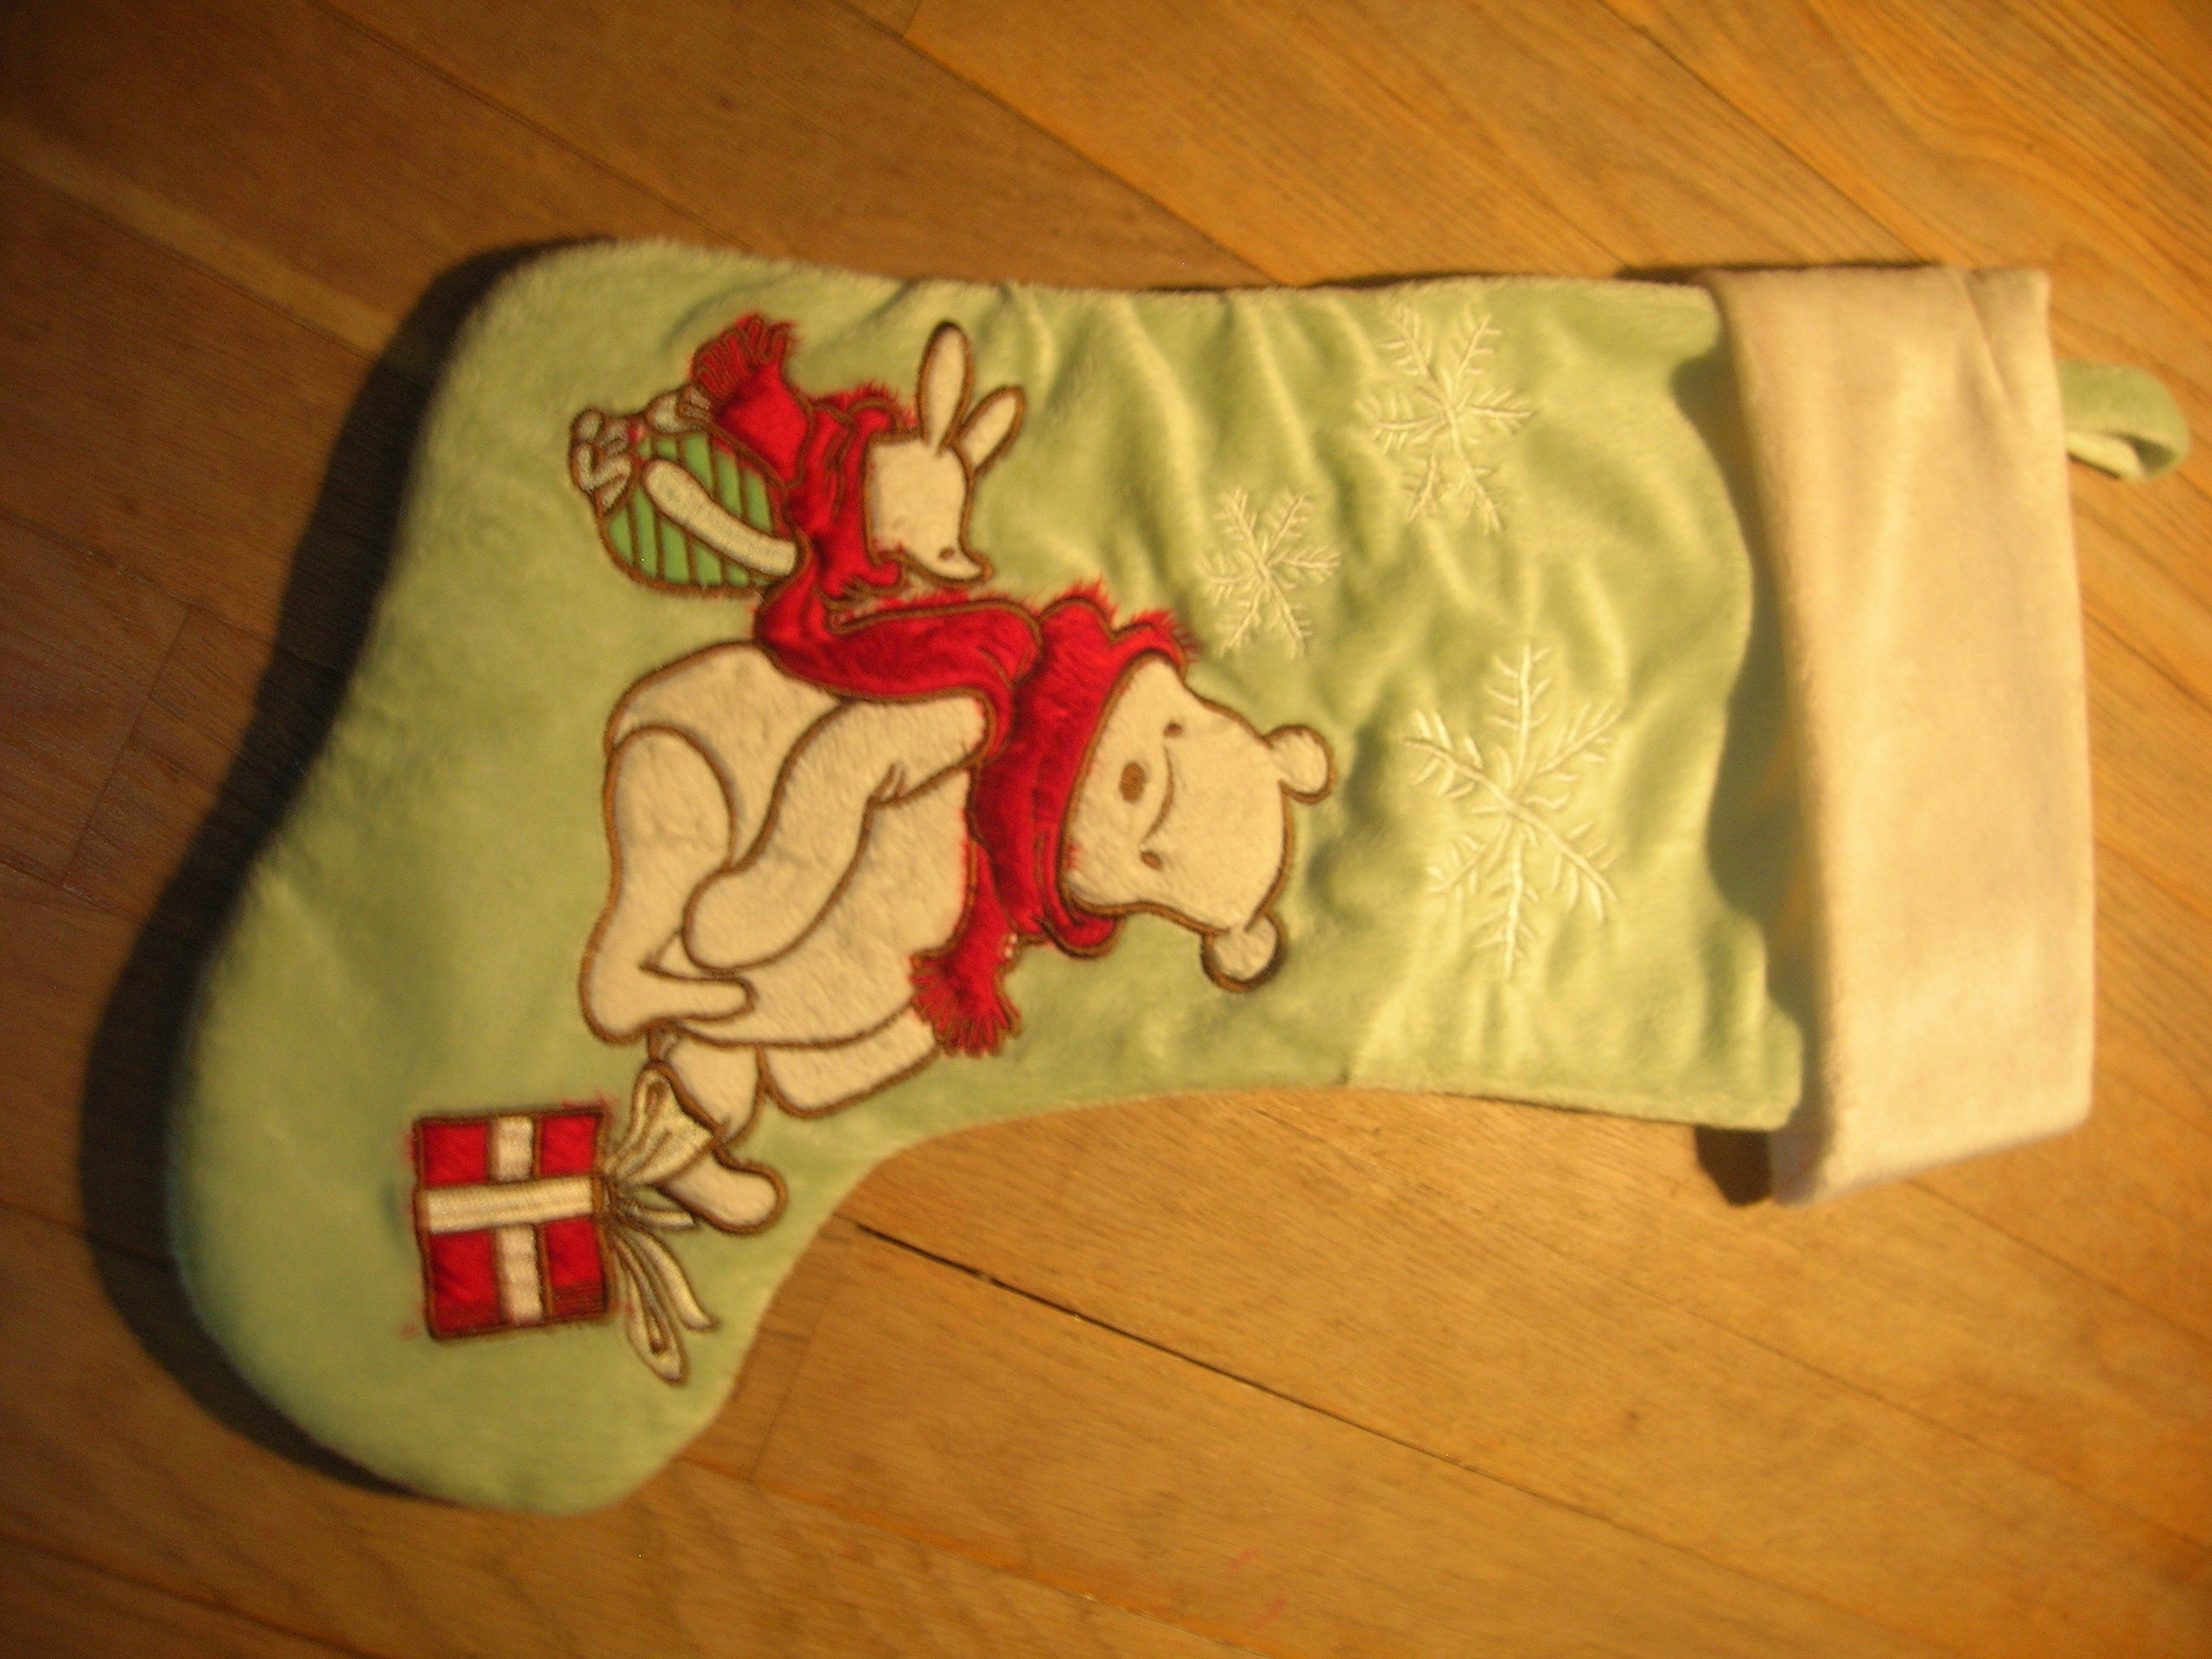 My New Piglet and Pooh Bear Christmas 2009 Stocking